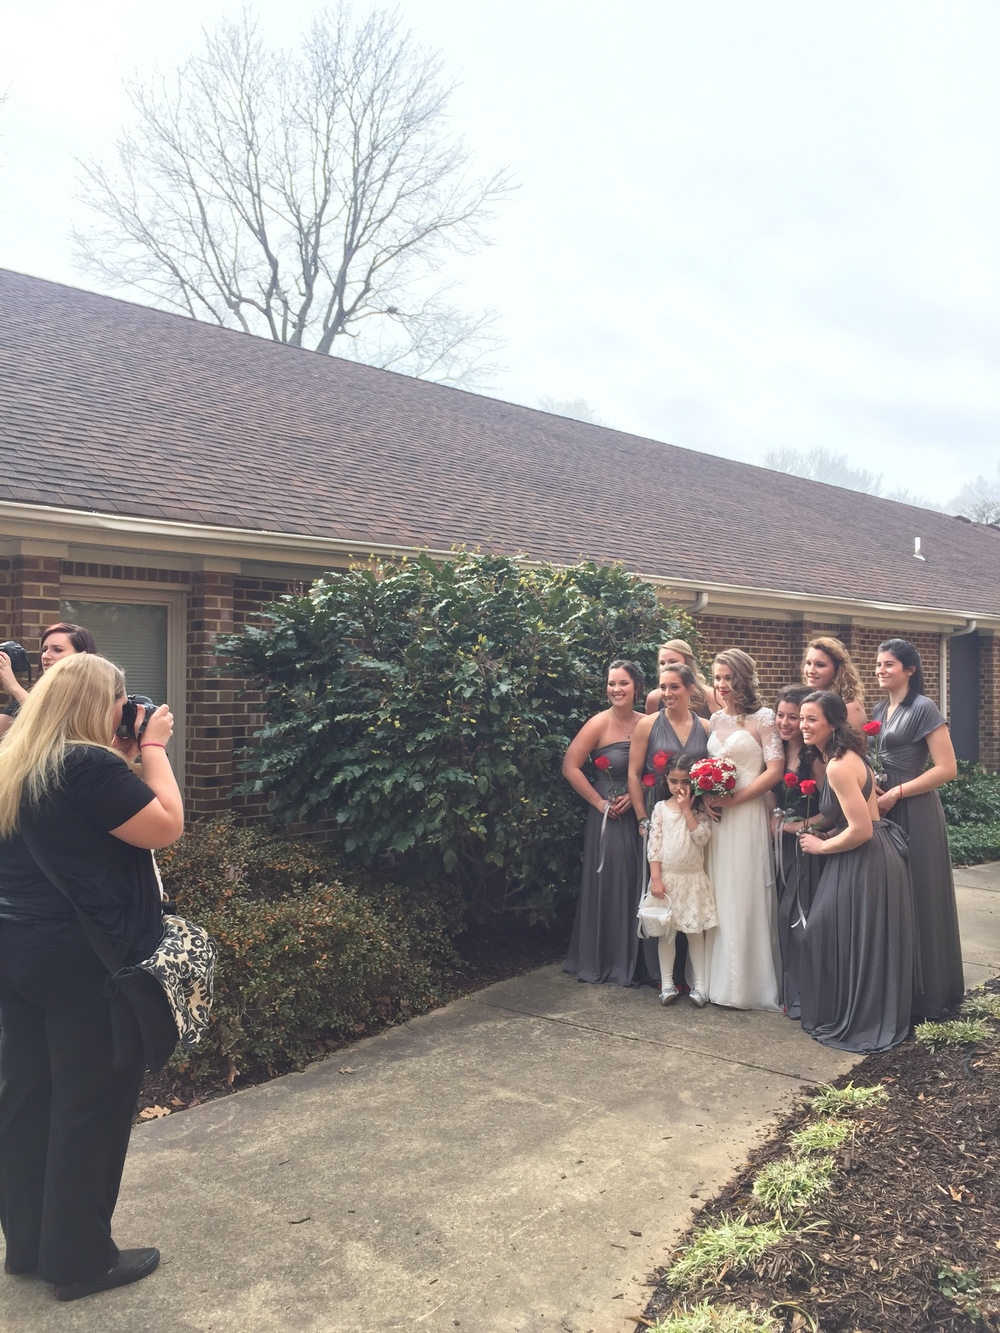 Oh, this bridal party! Their dresses were from Etsy and could be tied in many different ways. I loved Haleigh's color choices!